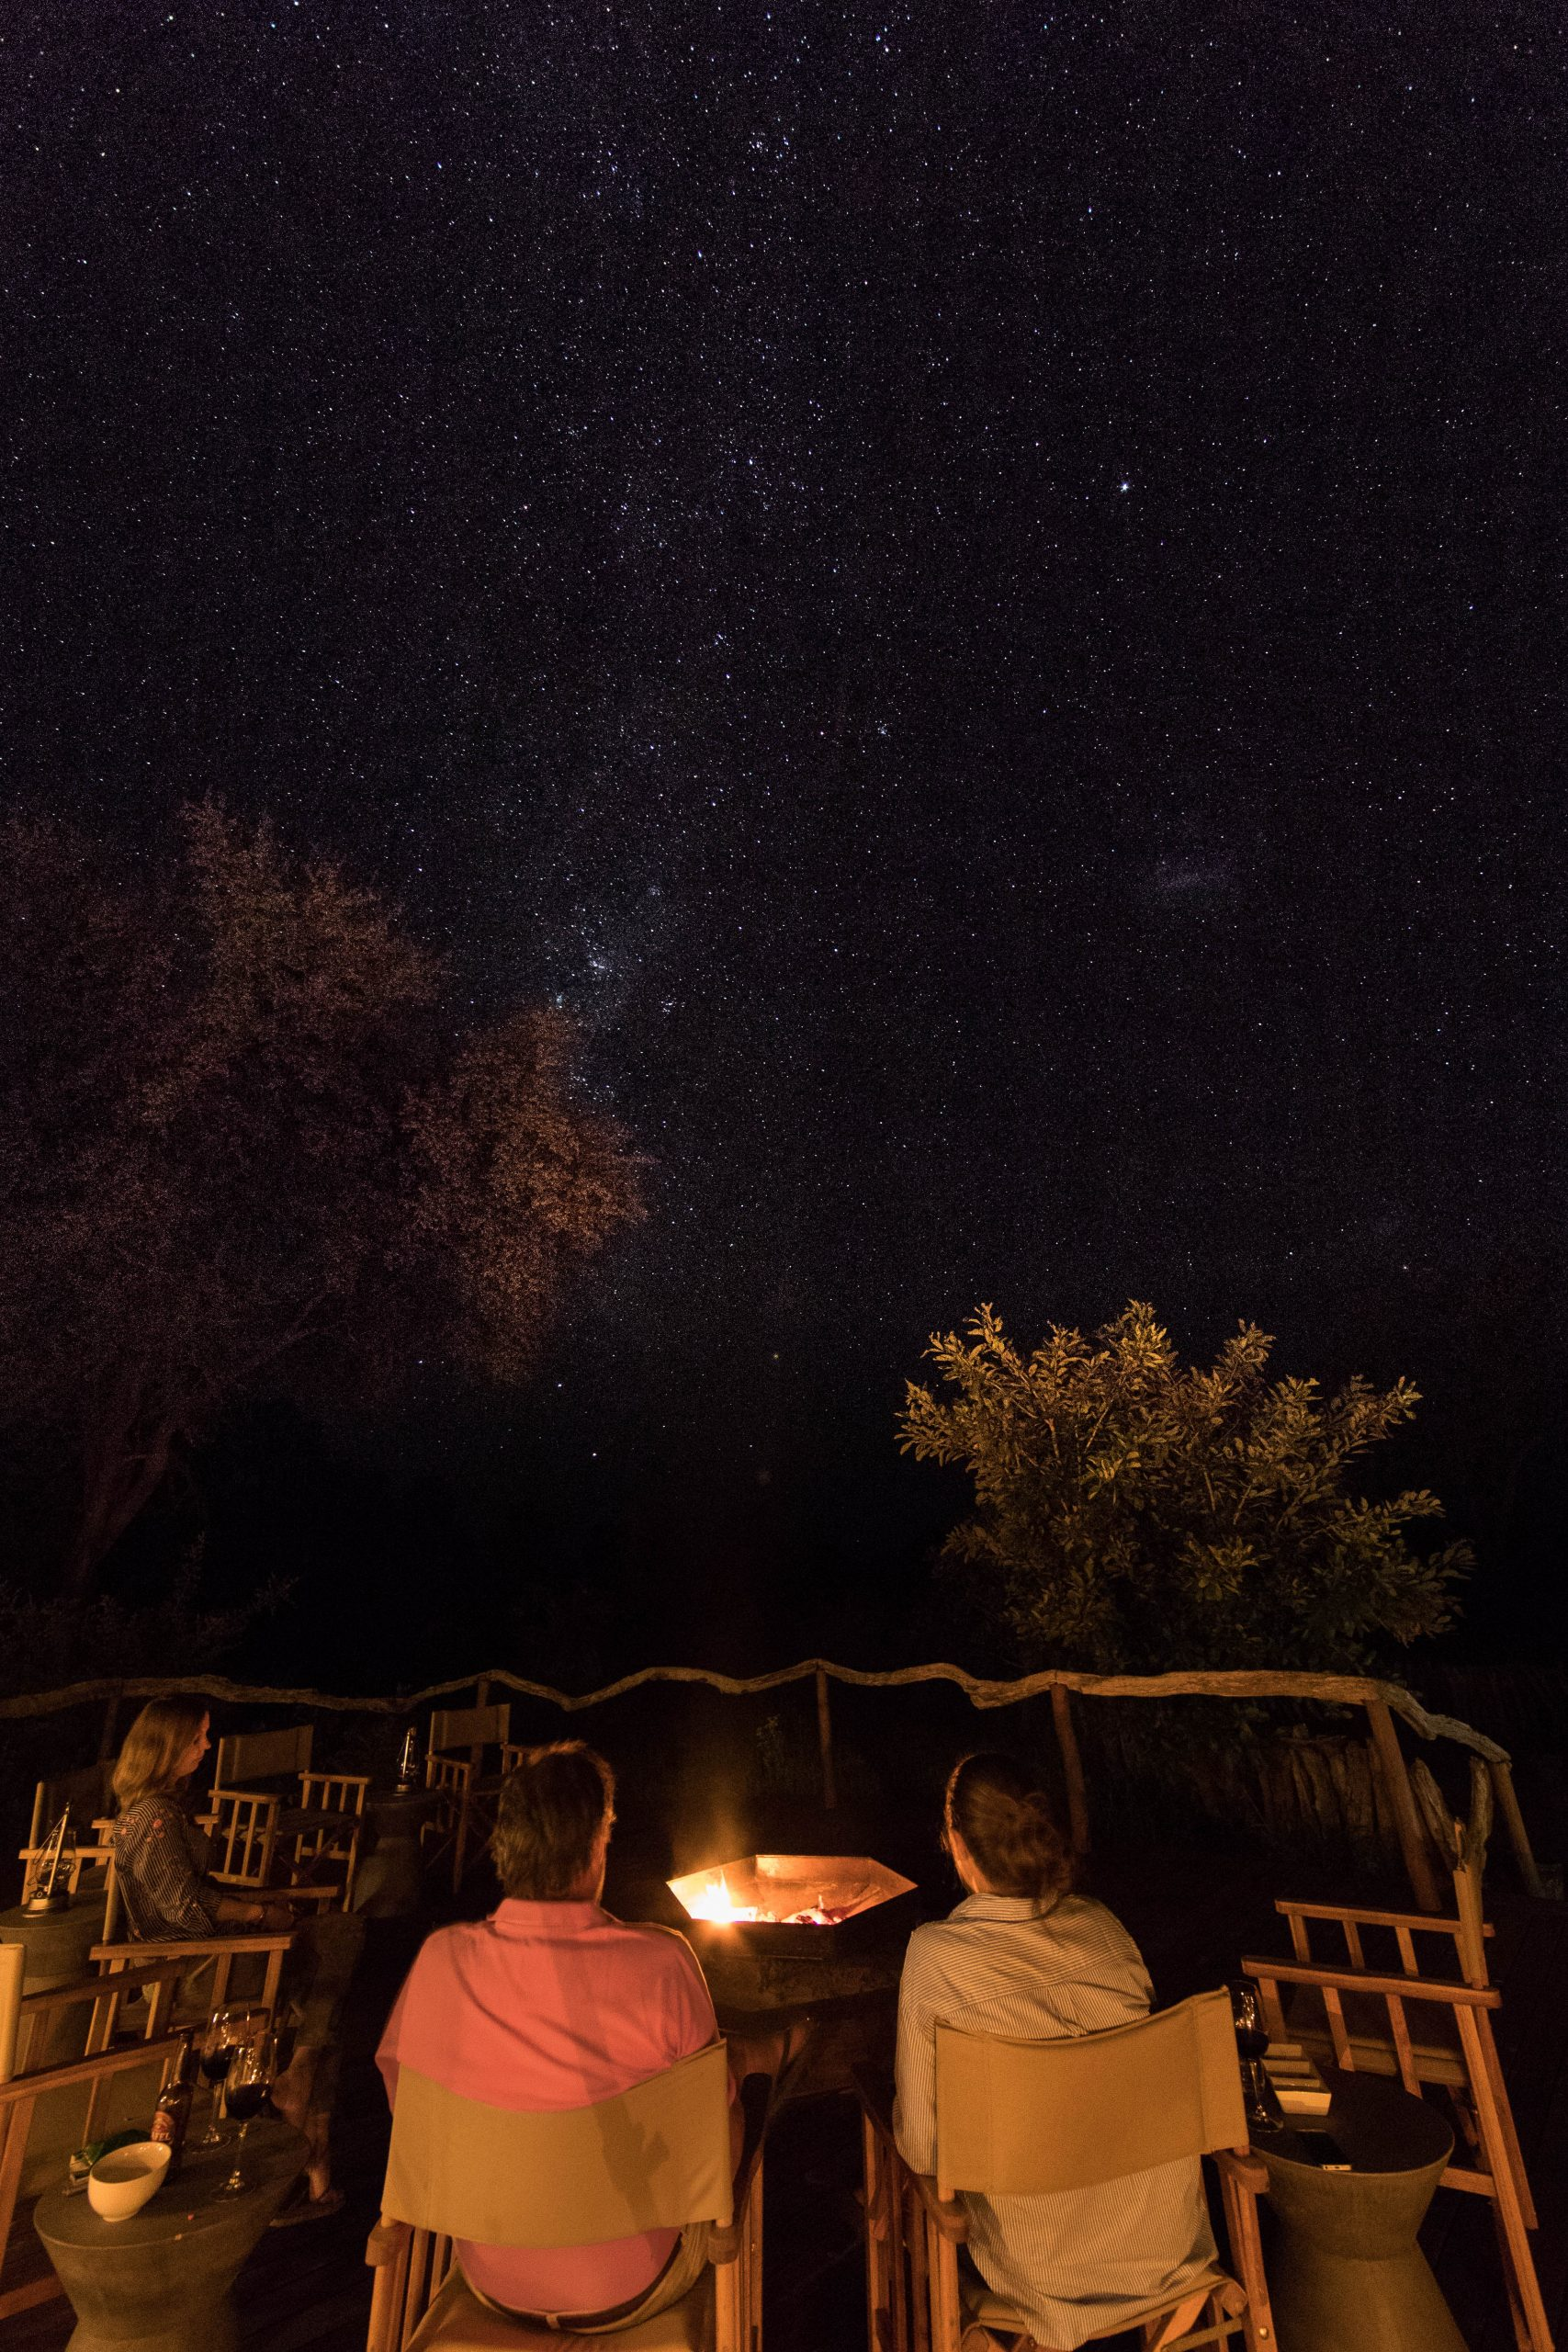 Star gazing with Roots & Journeys